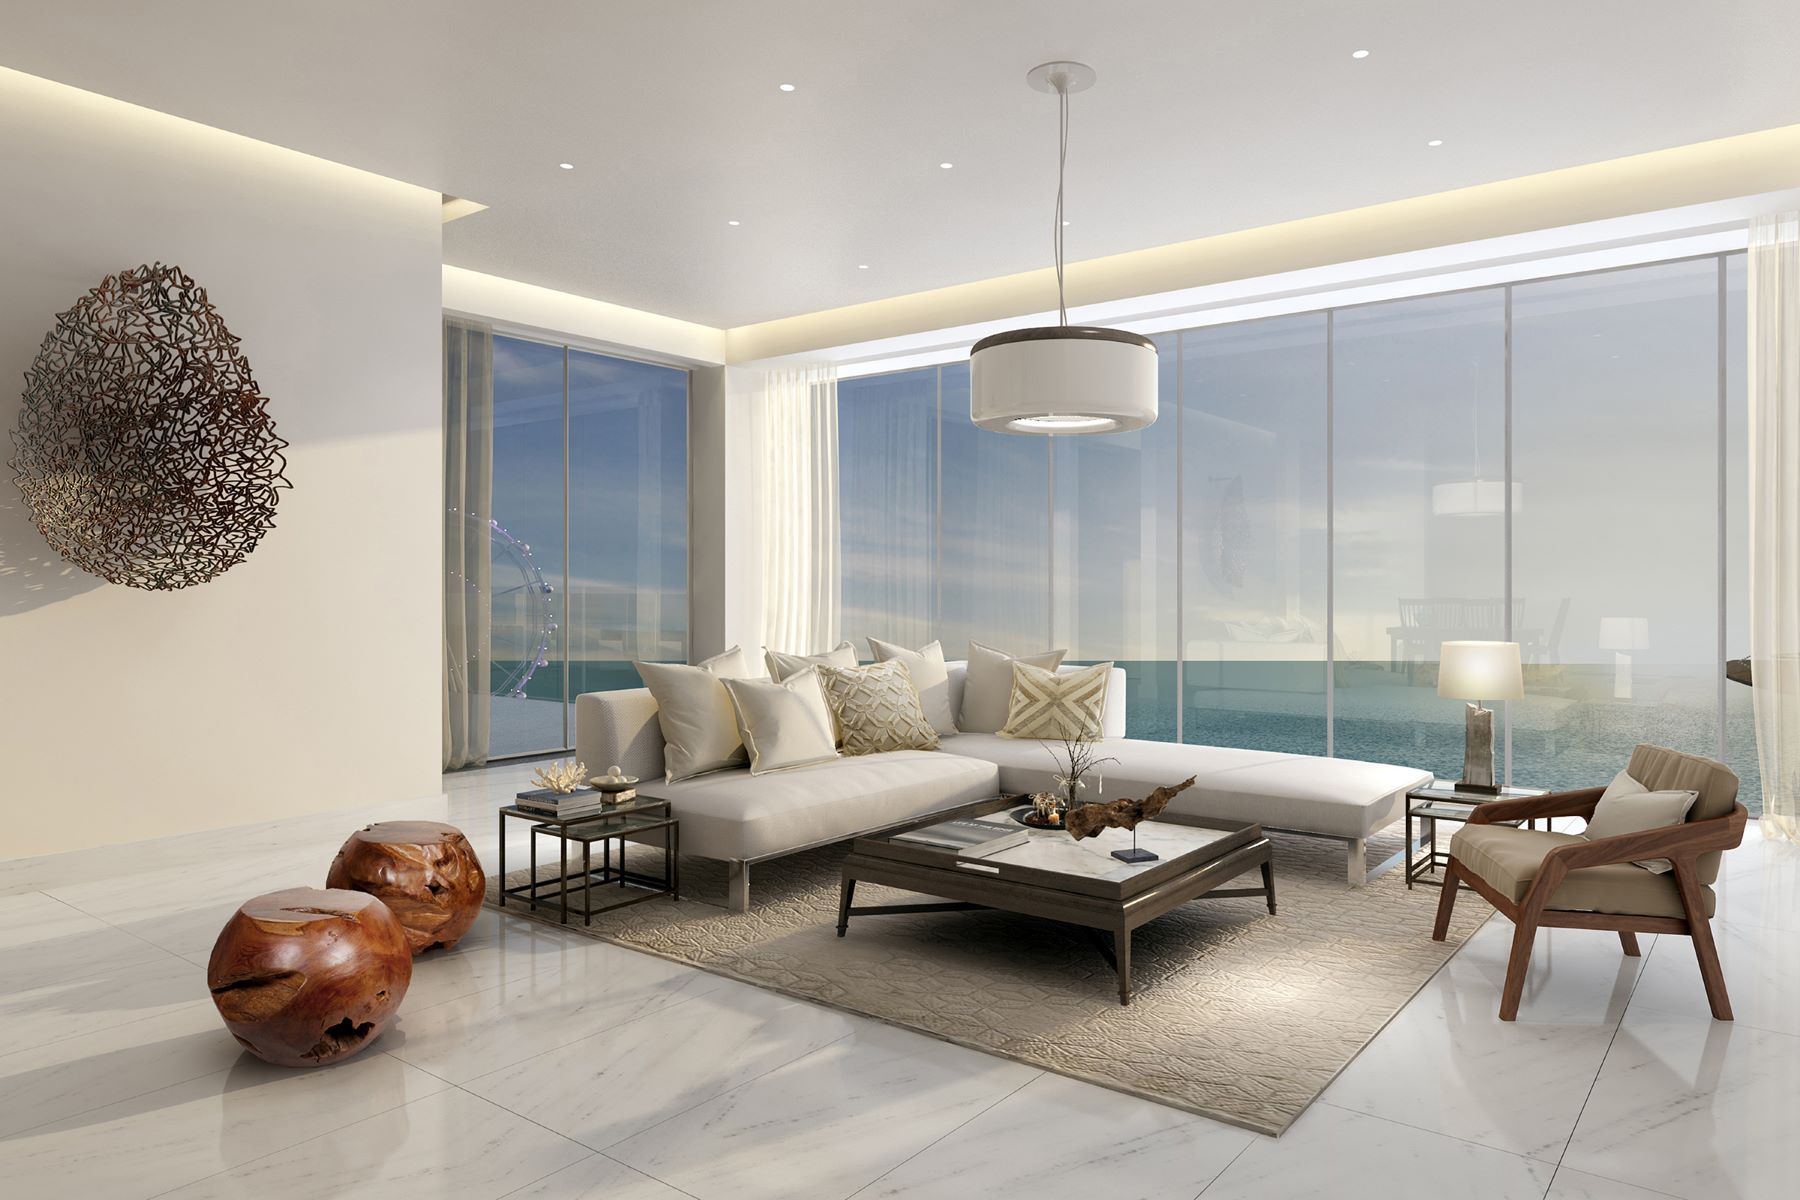 Apartment for Sale at Luxury Apartment In One JBR with Sea View Other Dubai, United Arab Emirates